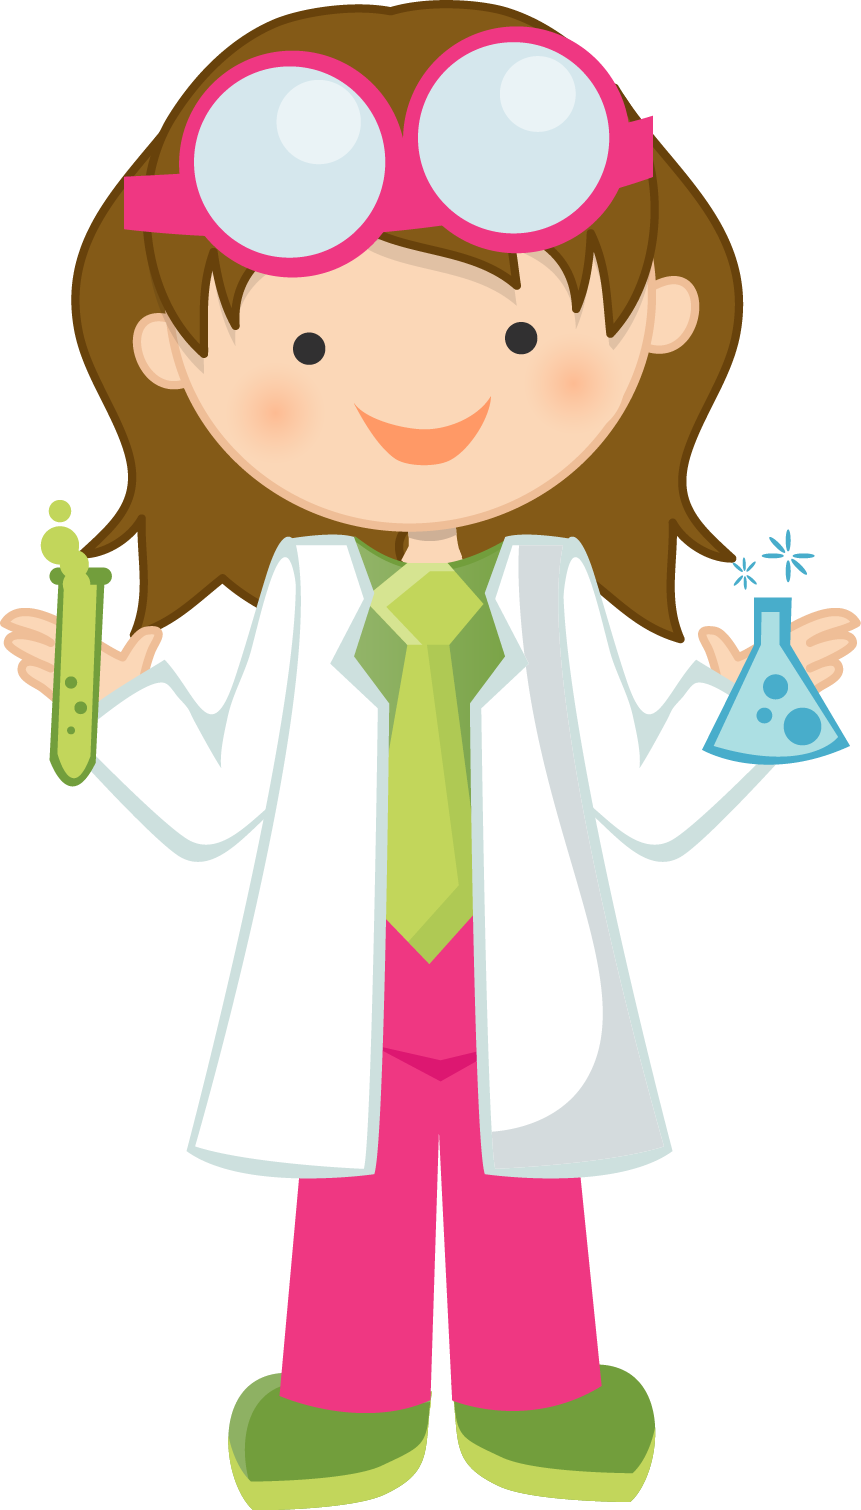 Woman clipart mad scientist #2